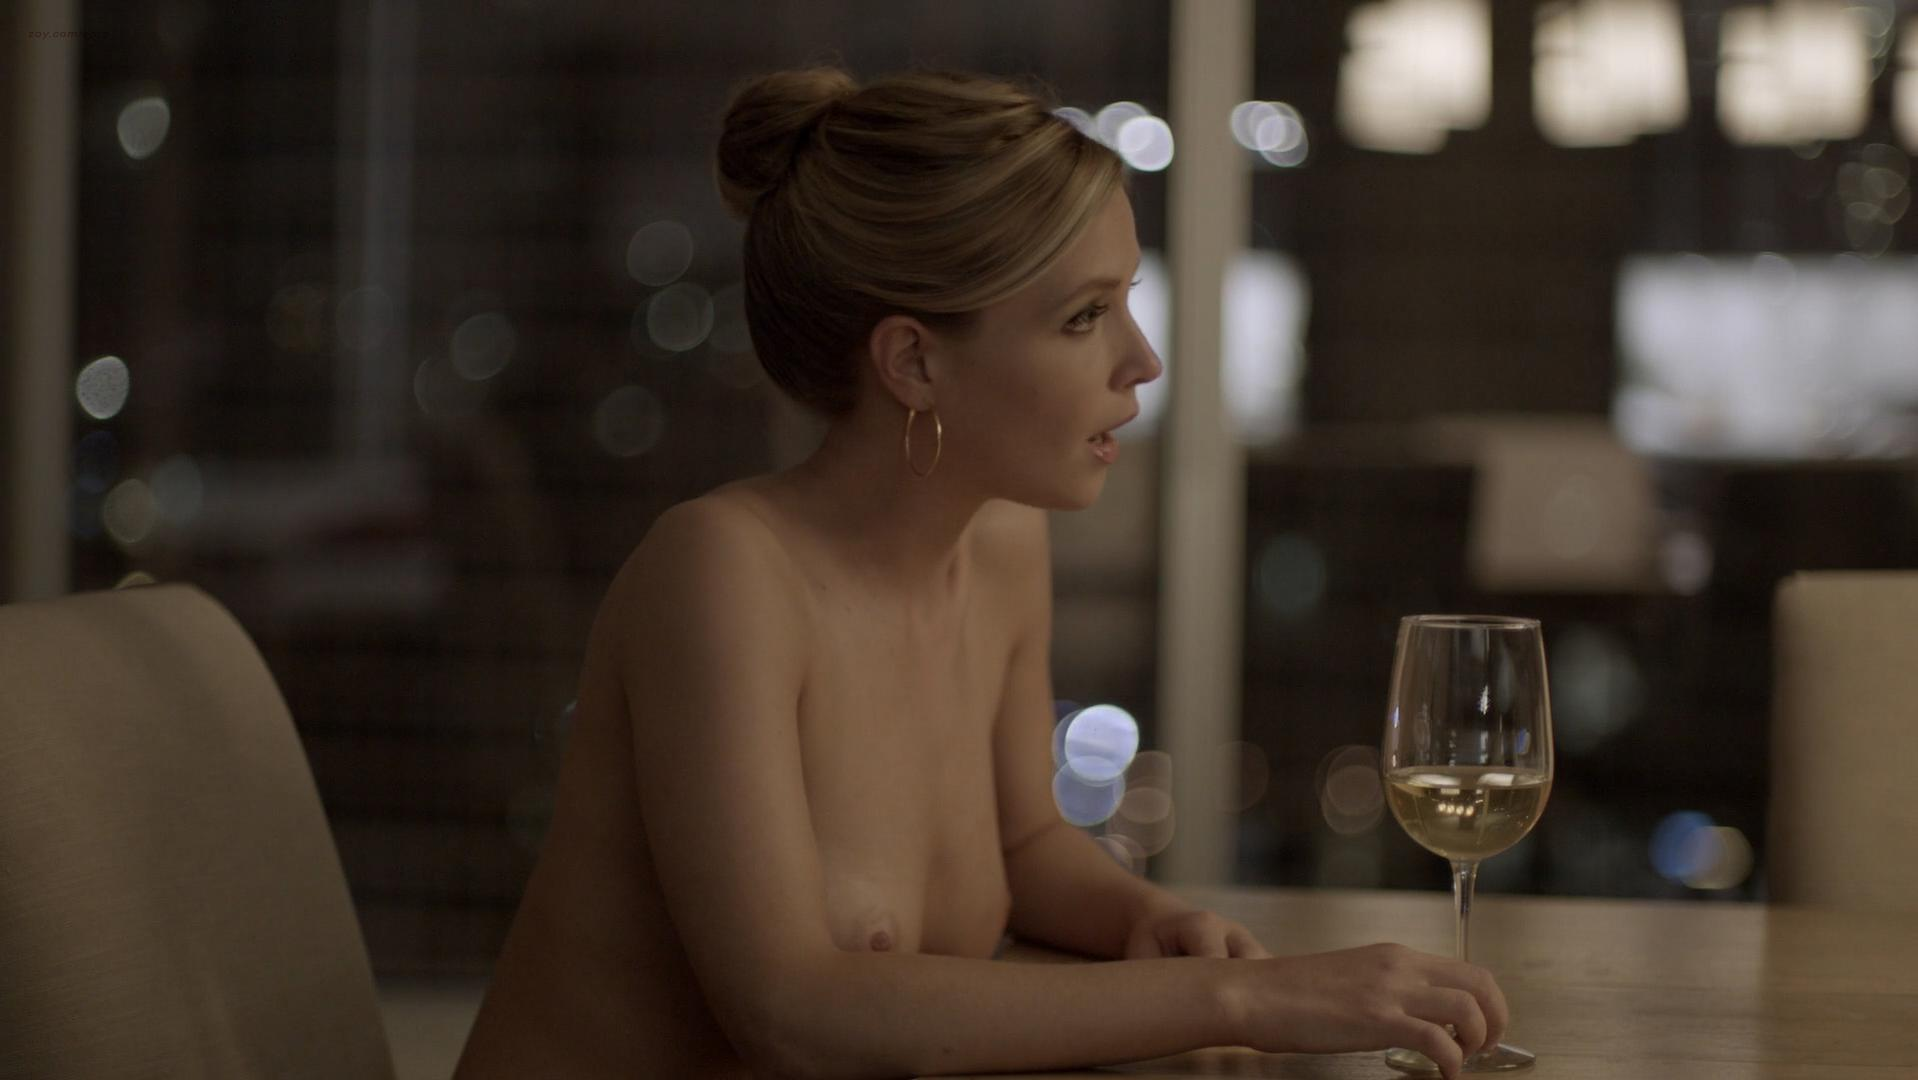 Laura Coover nude - Boss s01e02 (2011)